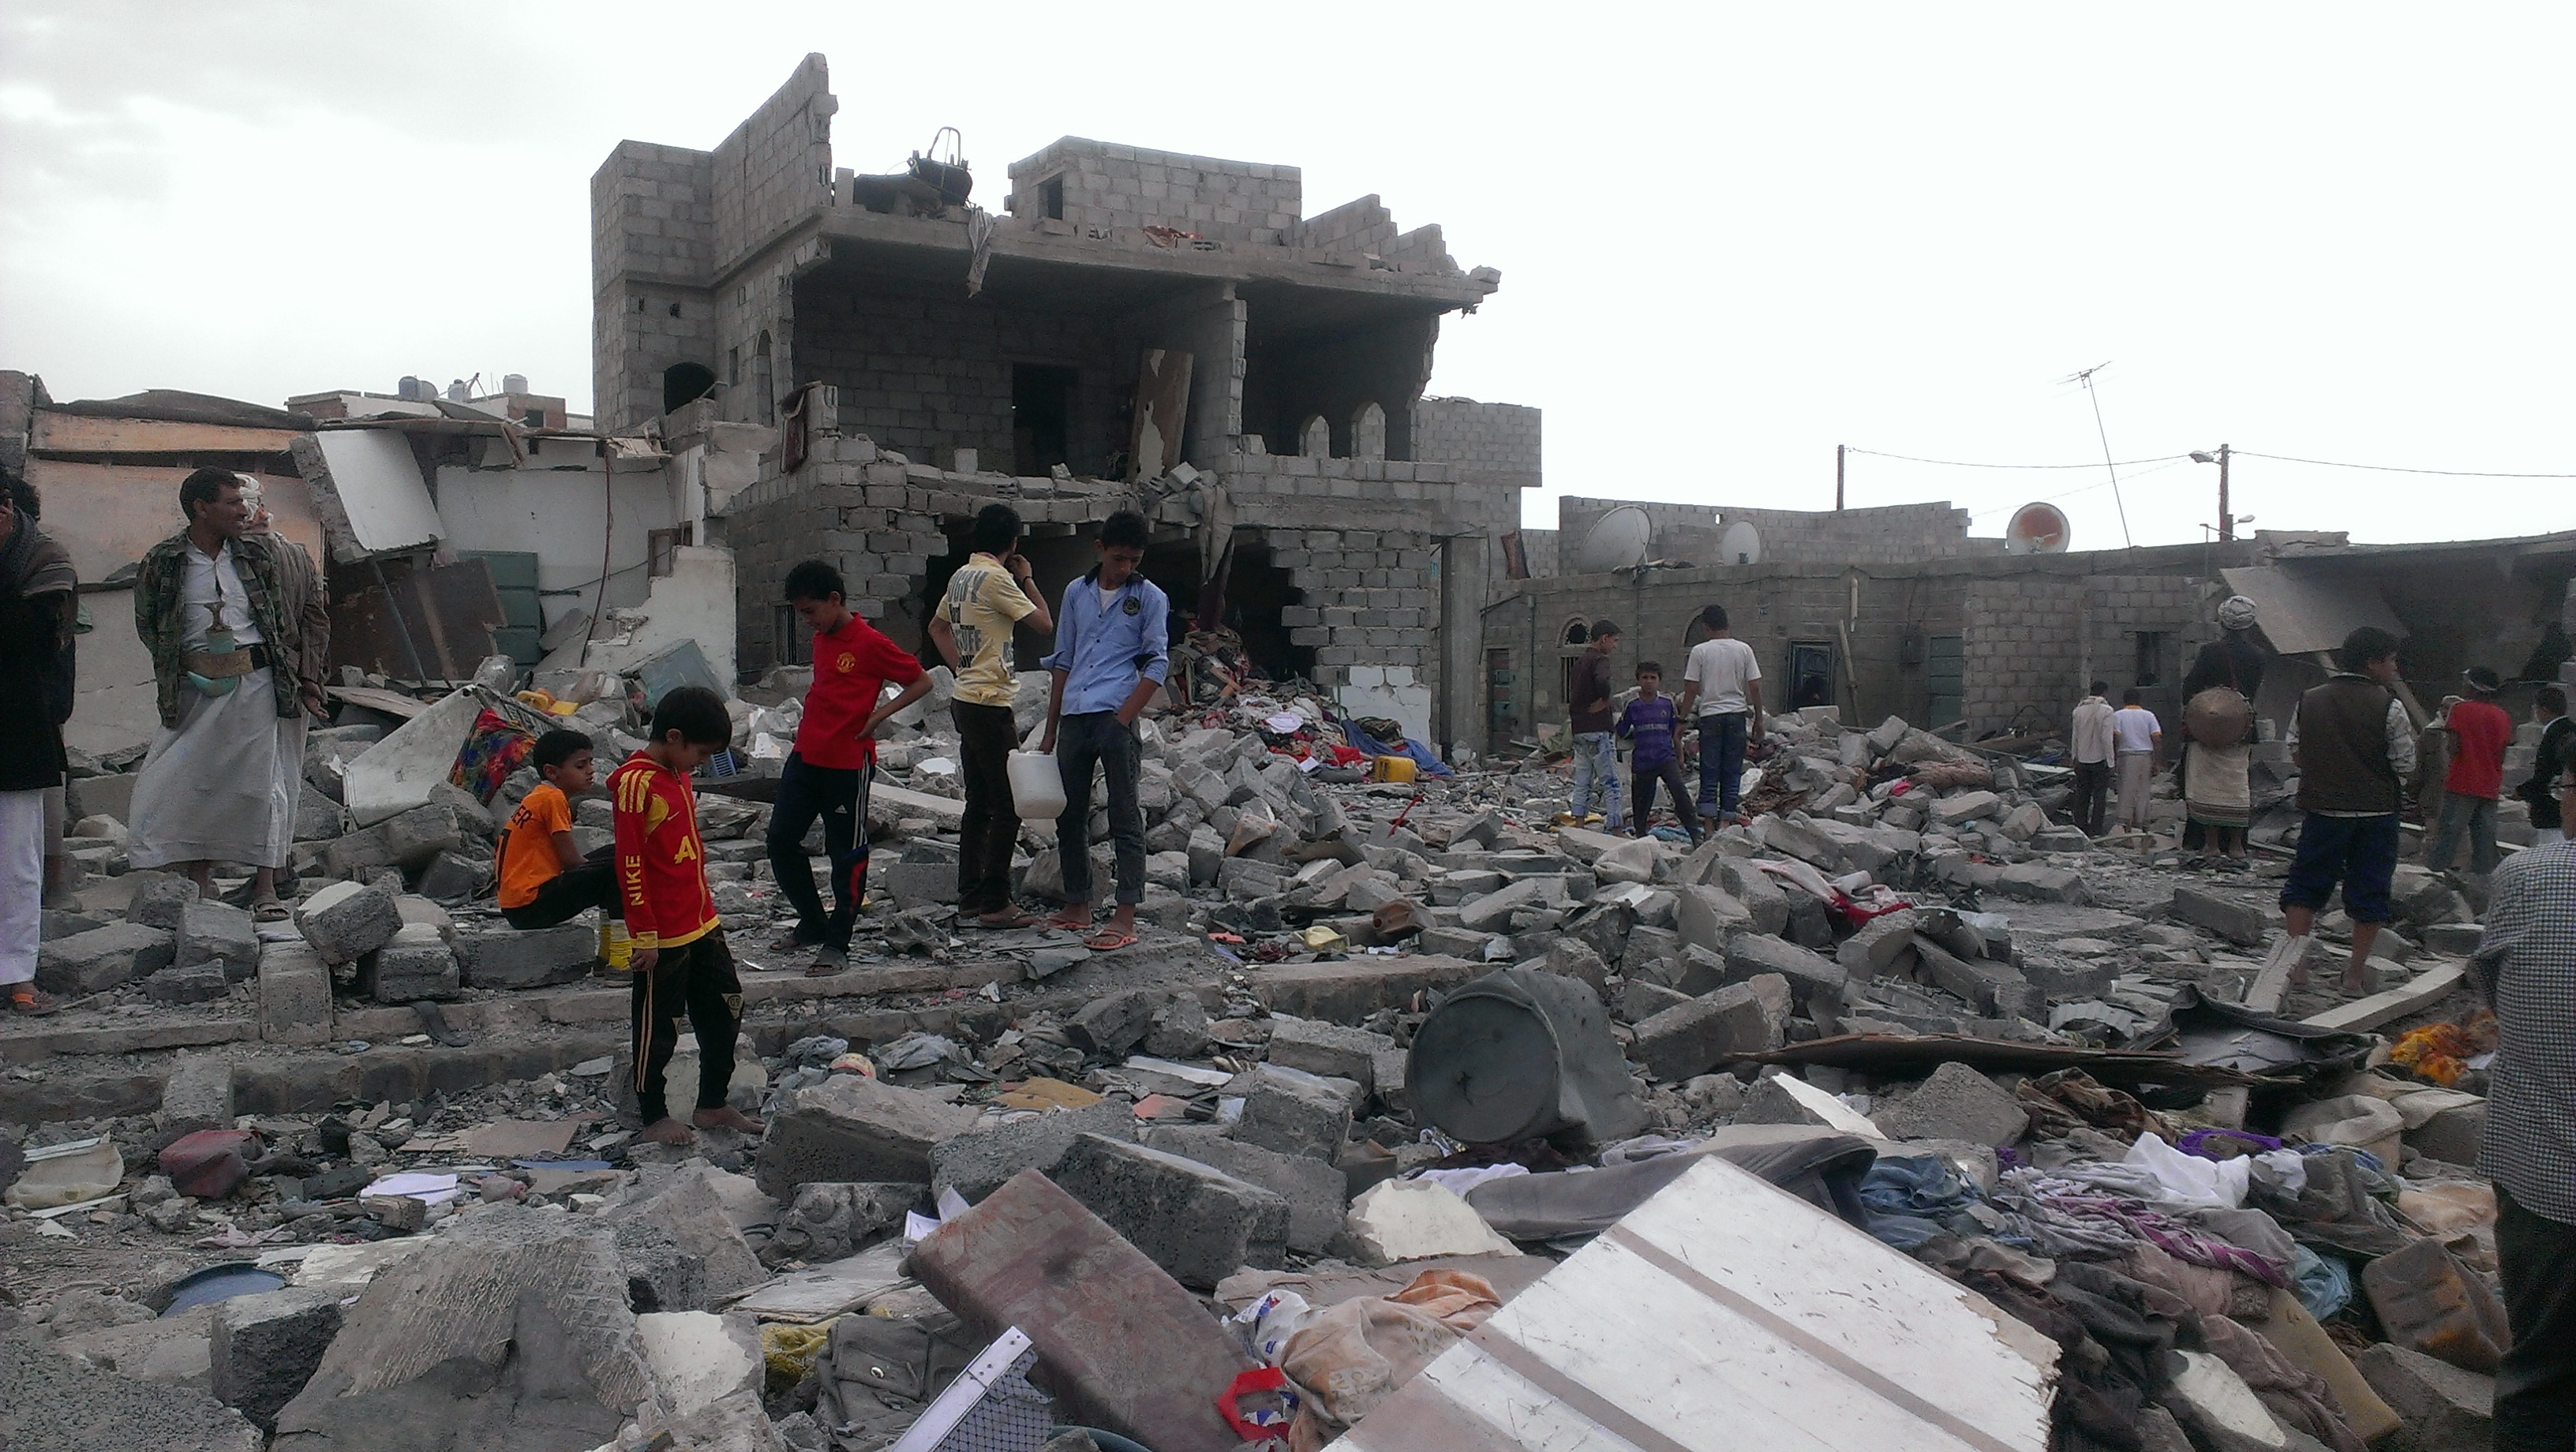 Several people walk among the rubble and debris of destroyed buildings.